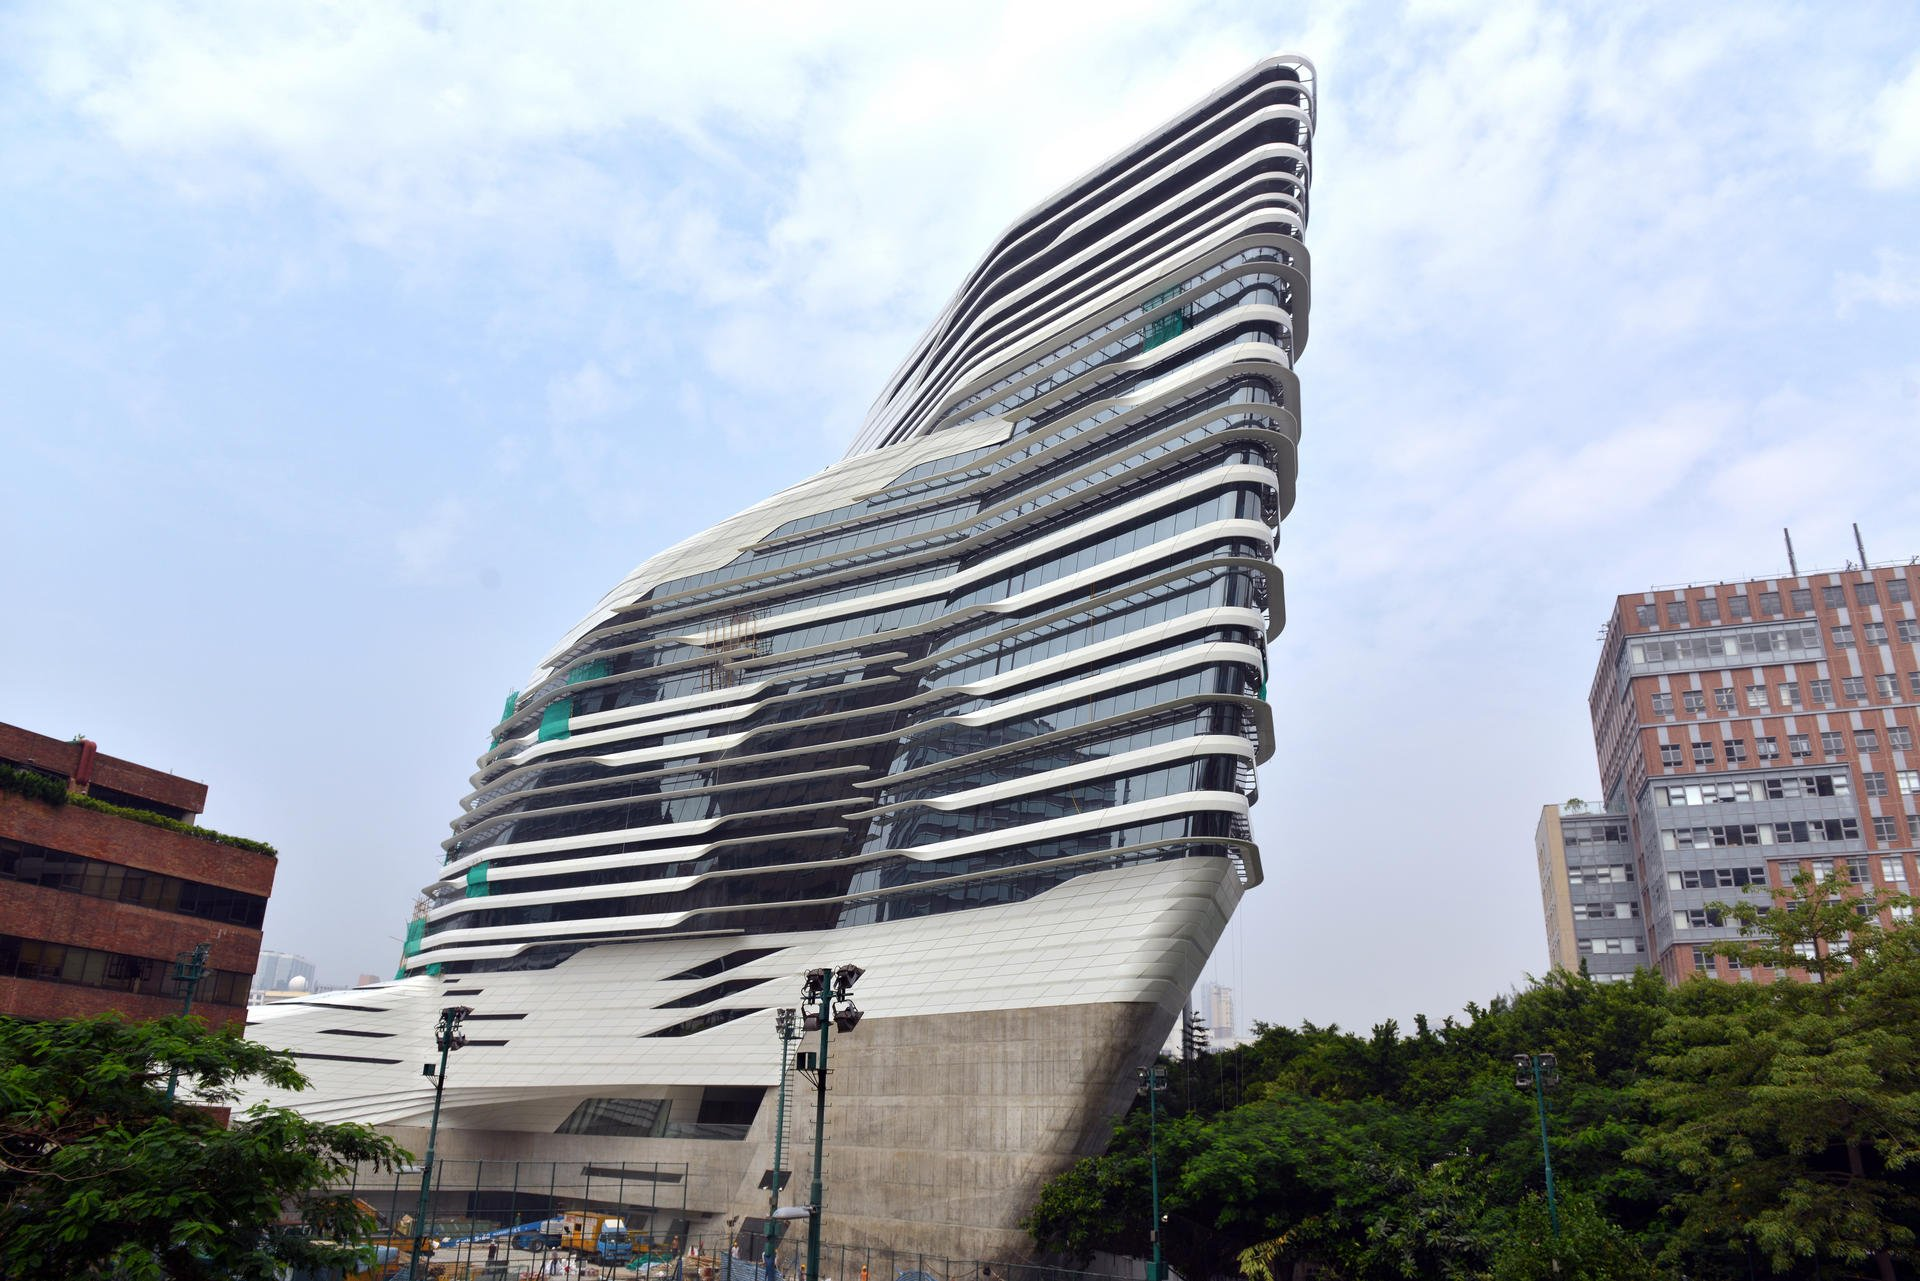 Architect zaha hadid 39 s distinctive style a hit in china for Architecture art design